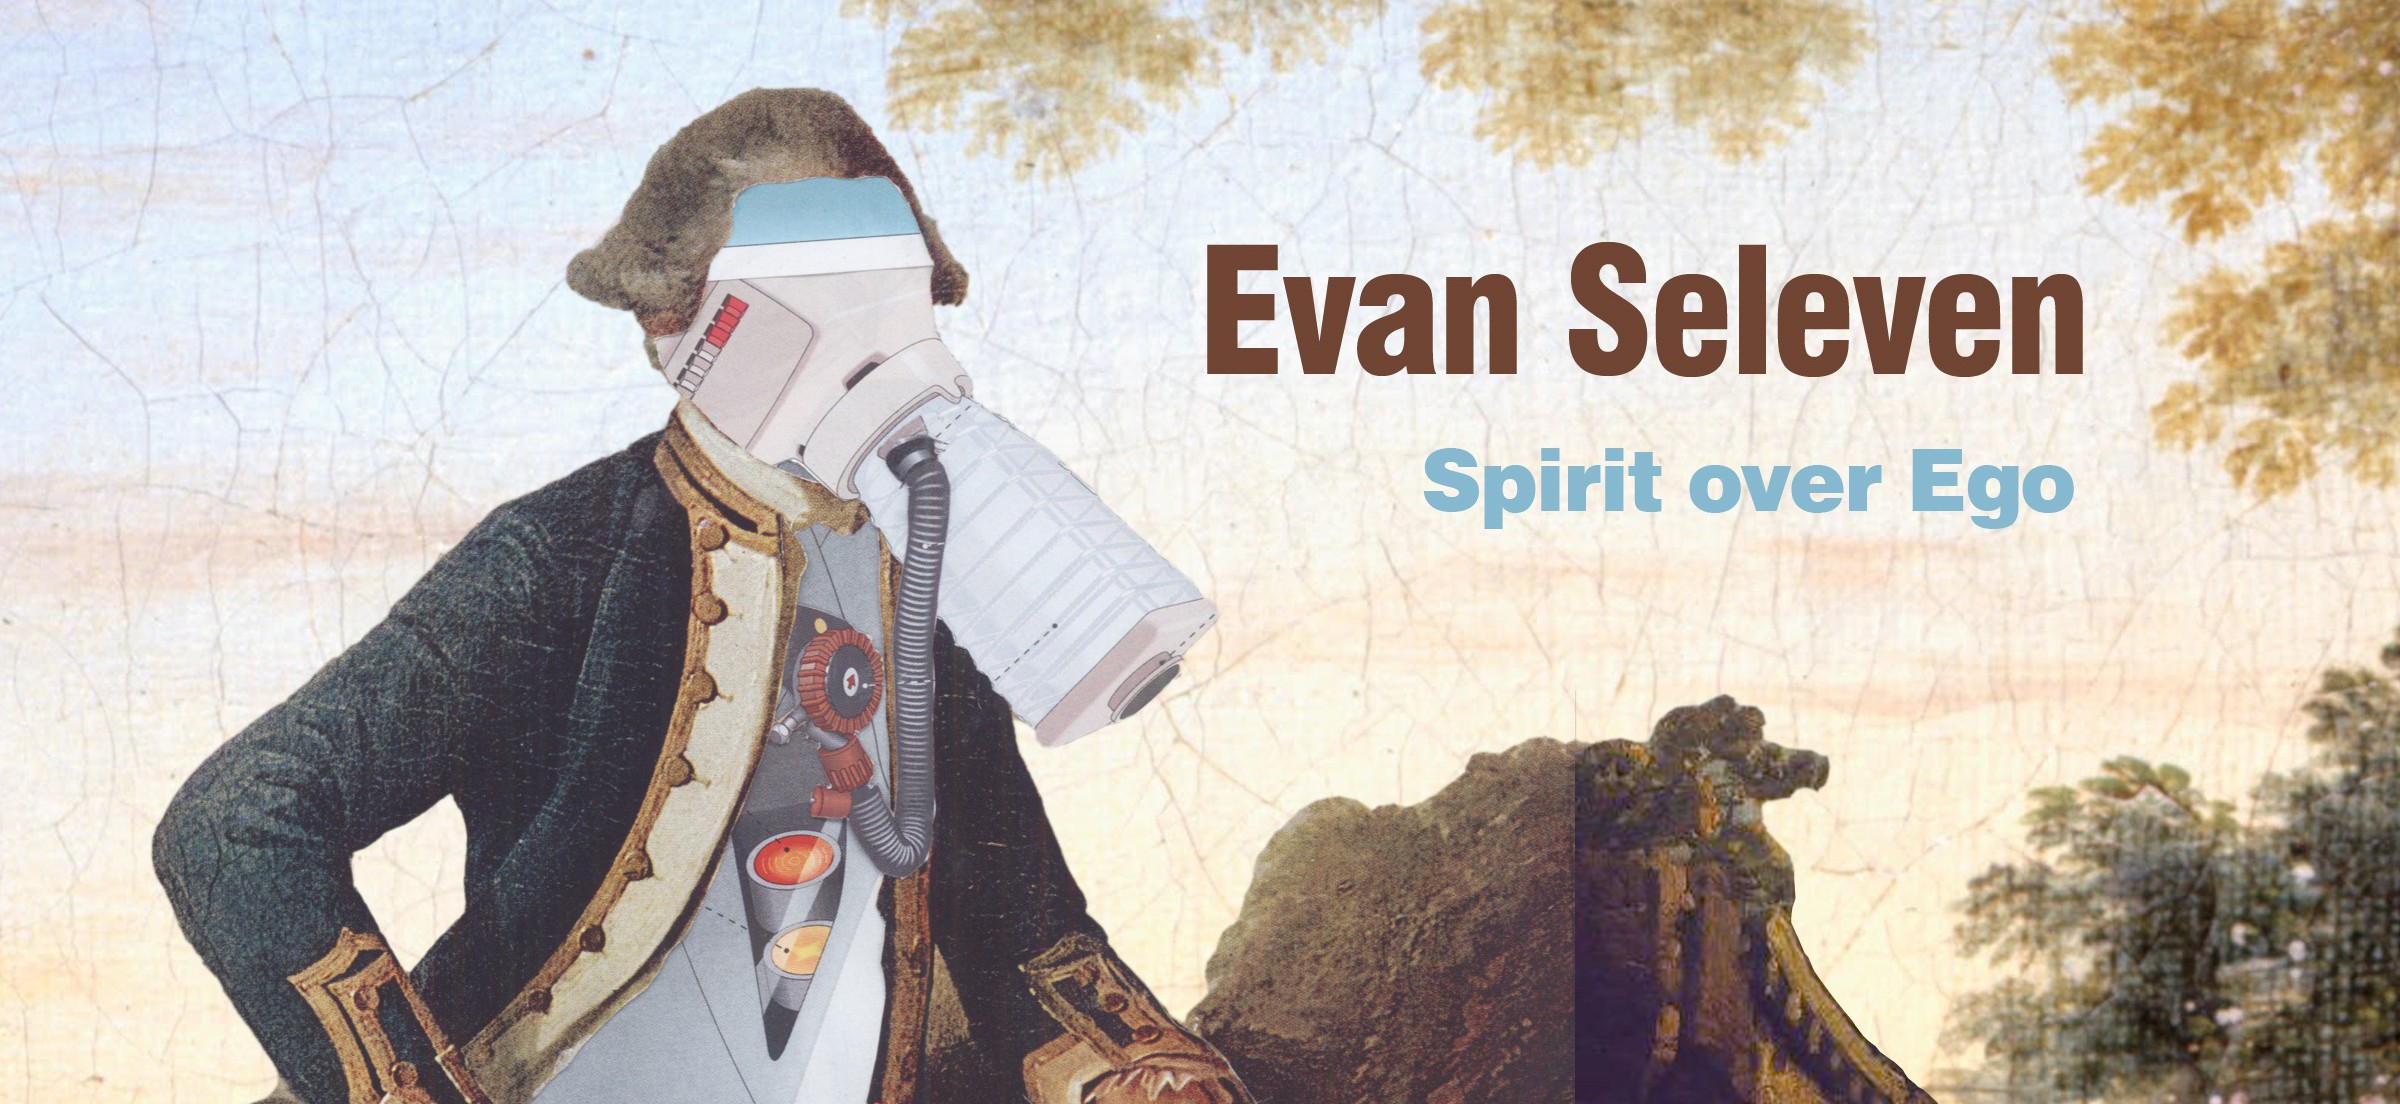 Evan Seleven Spirit over Ego